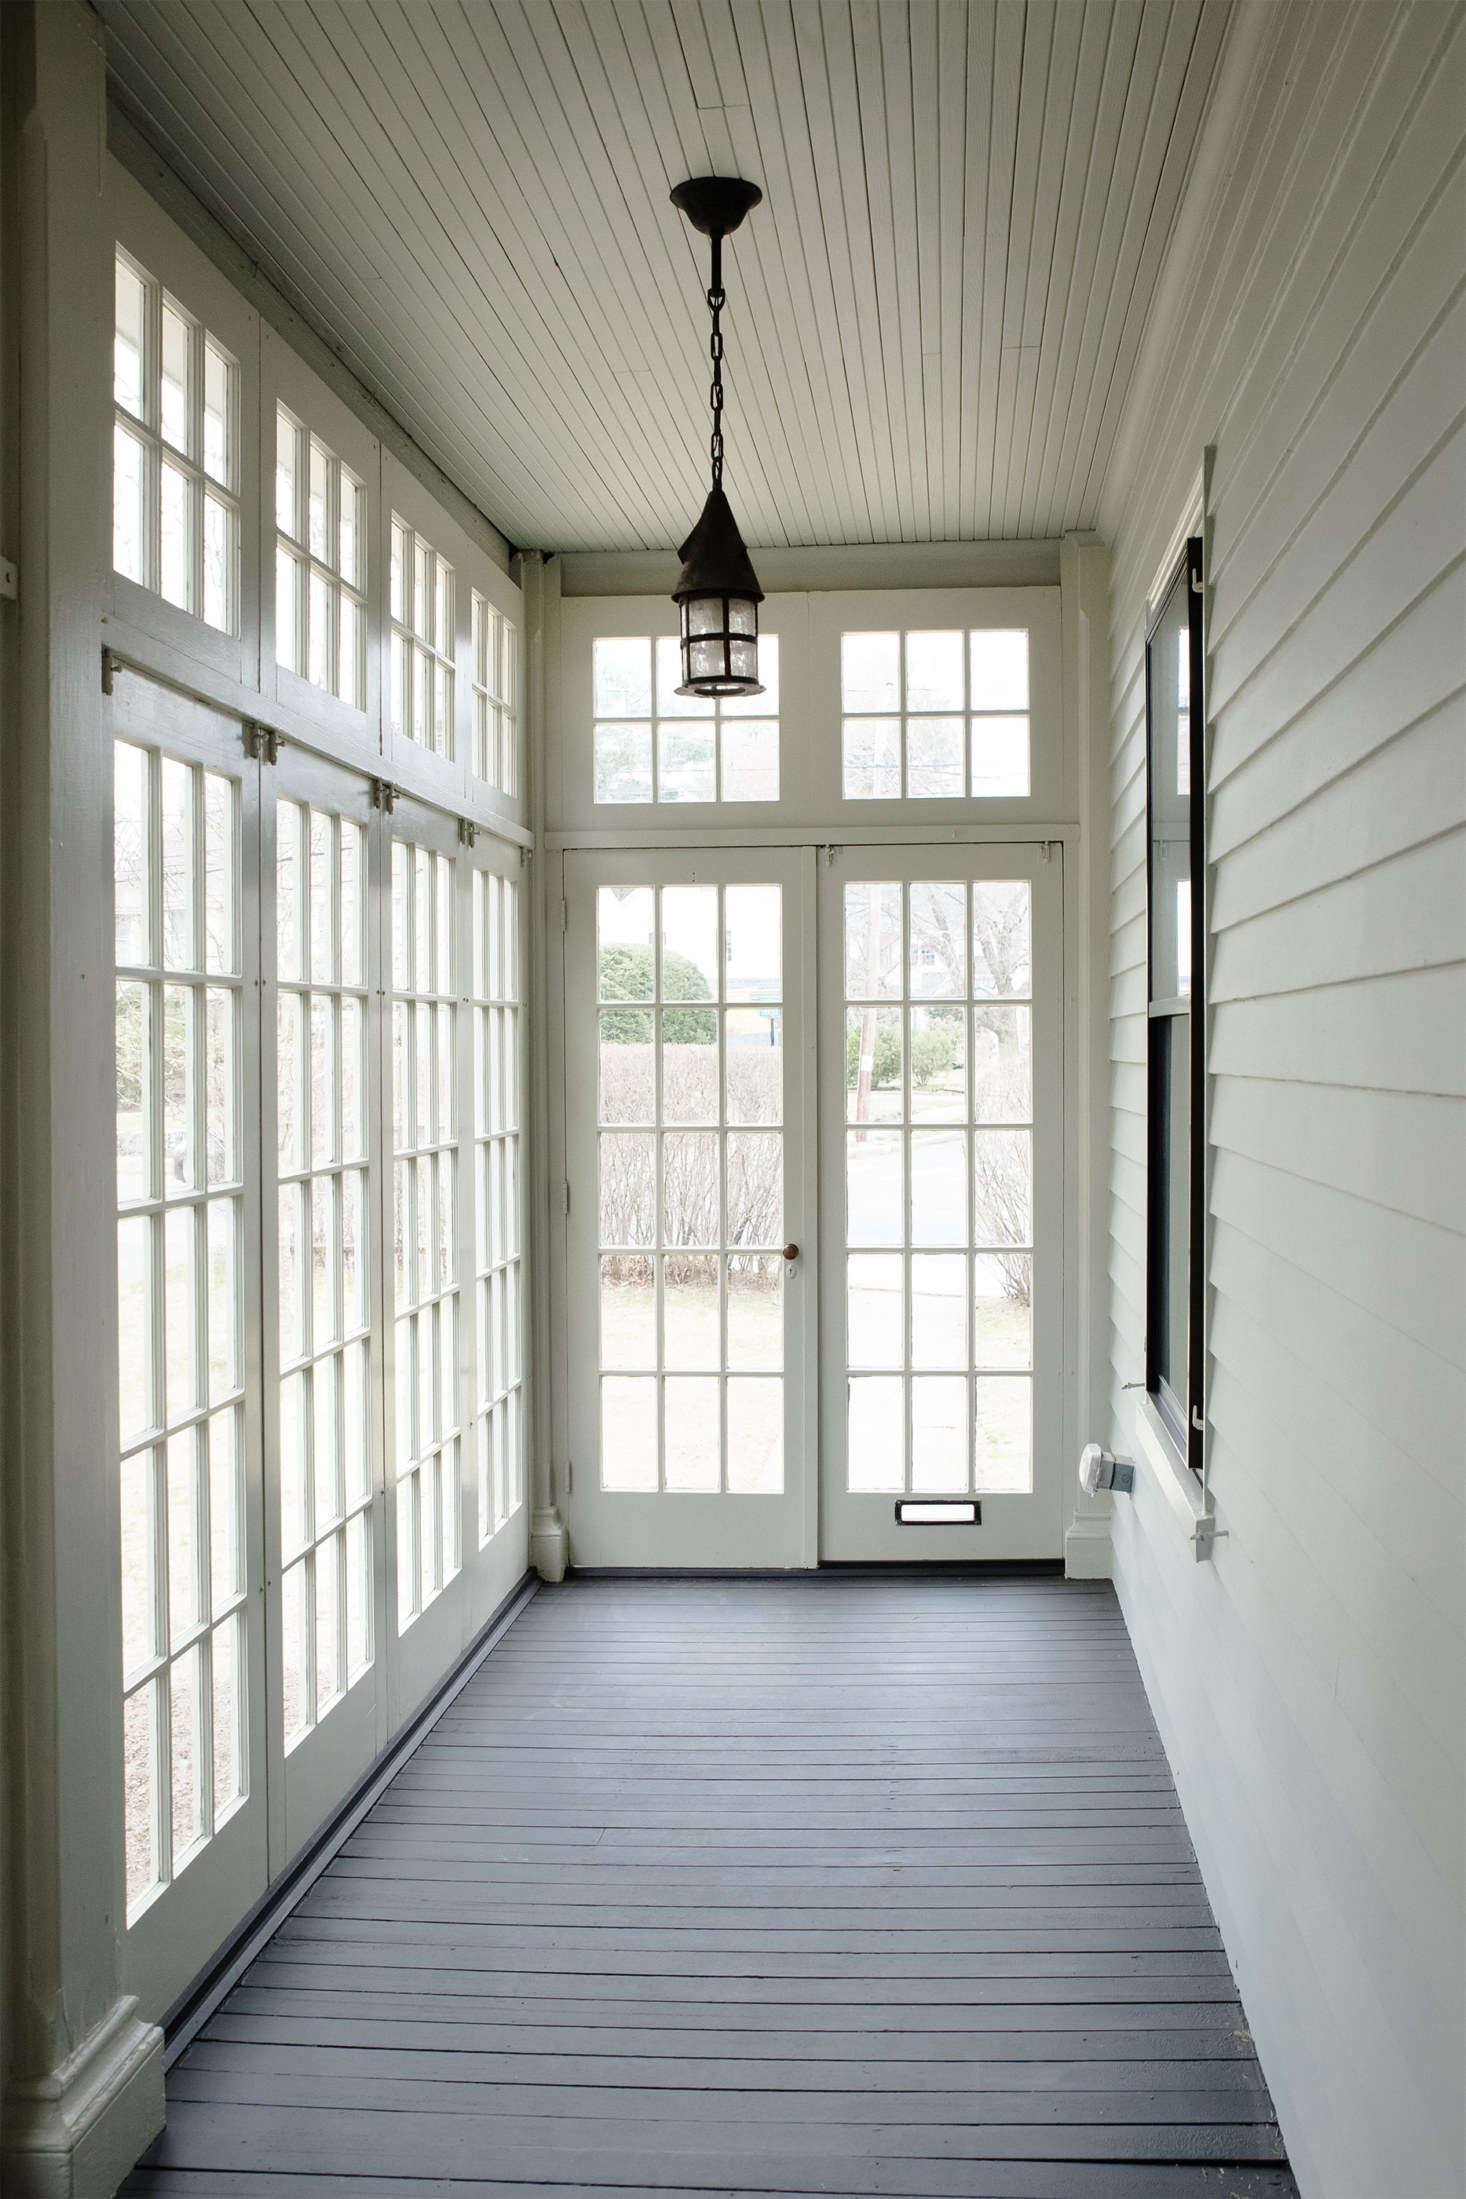 My porch looking fresh after the Catchlight crew came through. Detailed work such as window mullions require a steady hand and a lots of time.